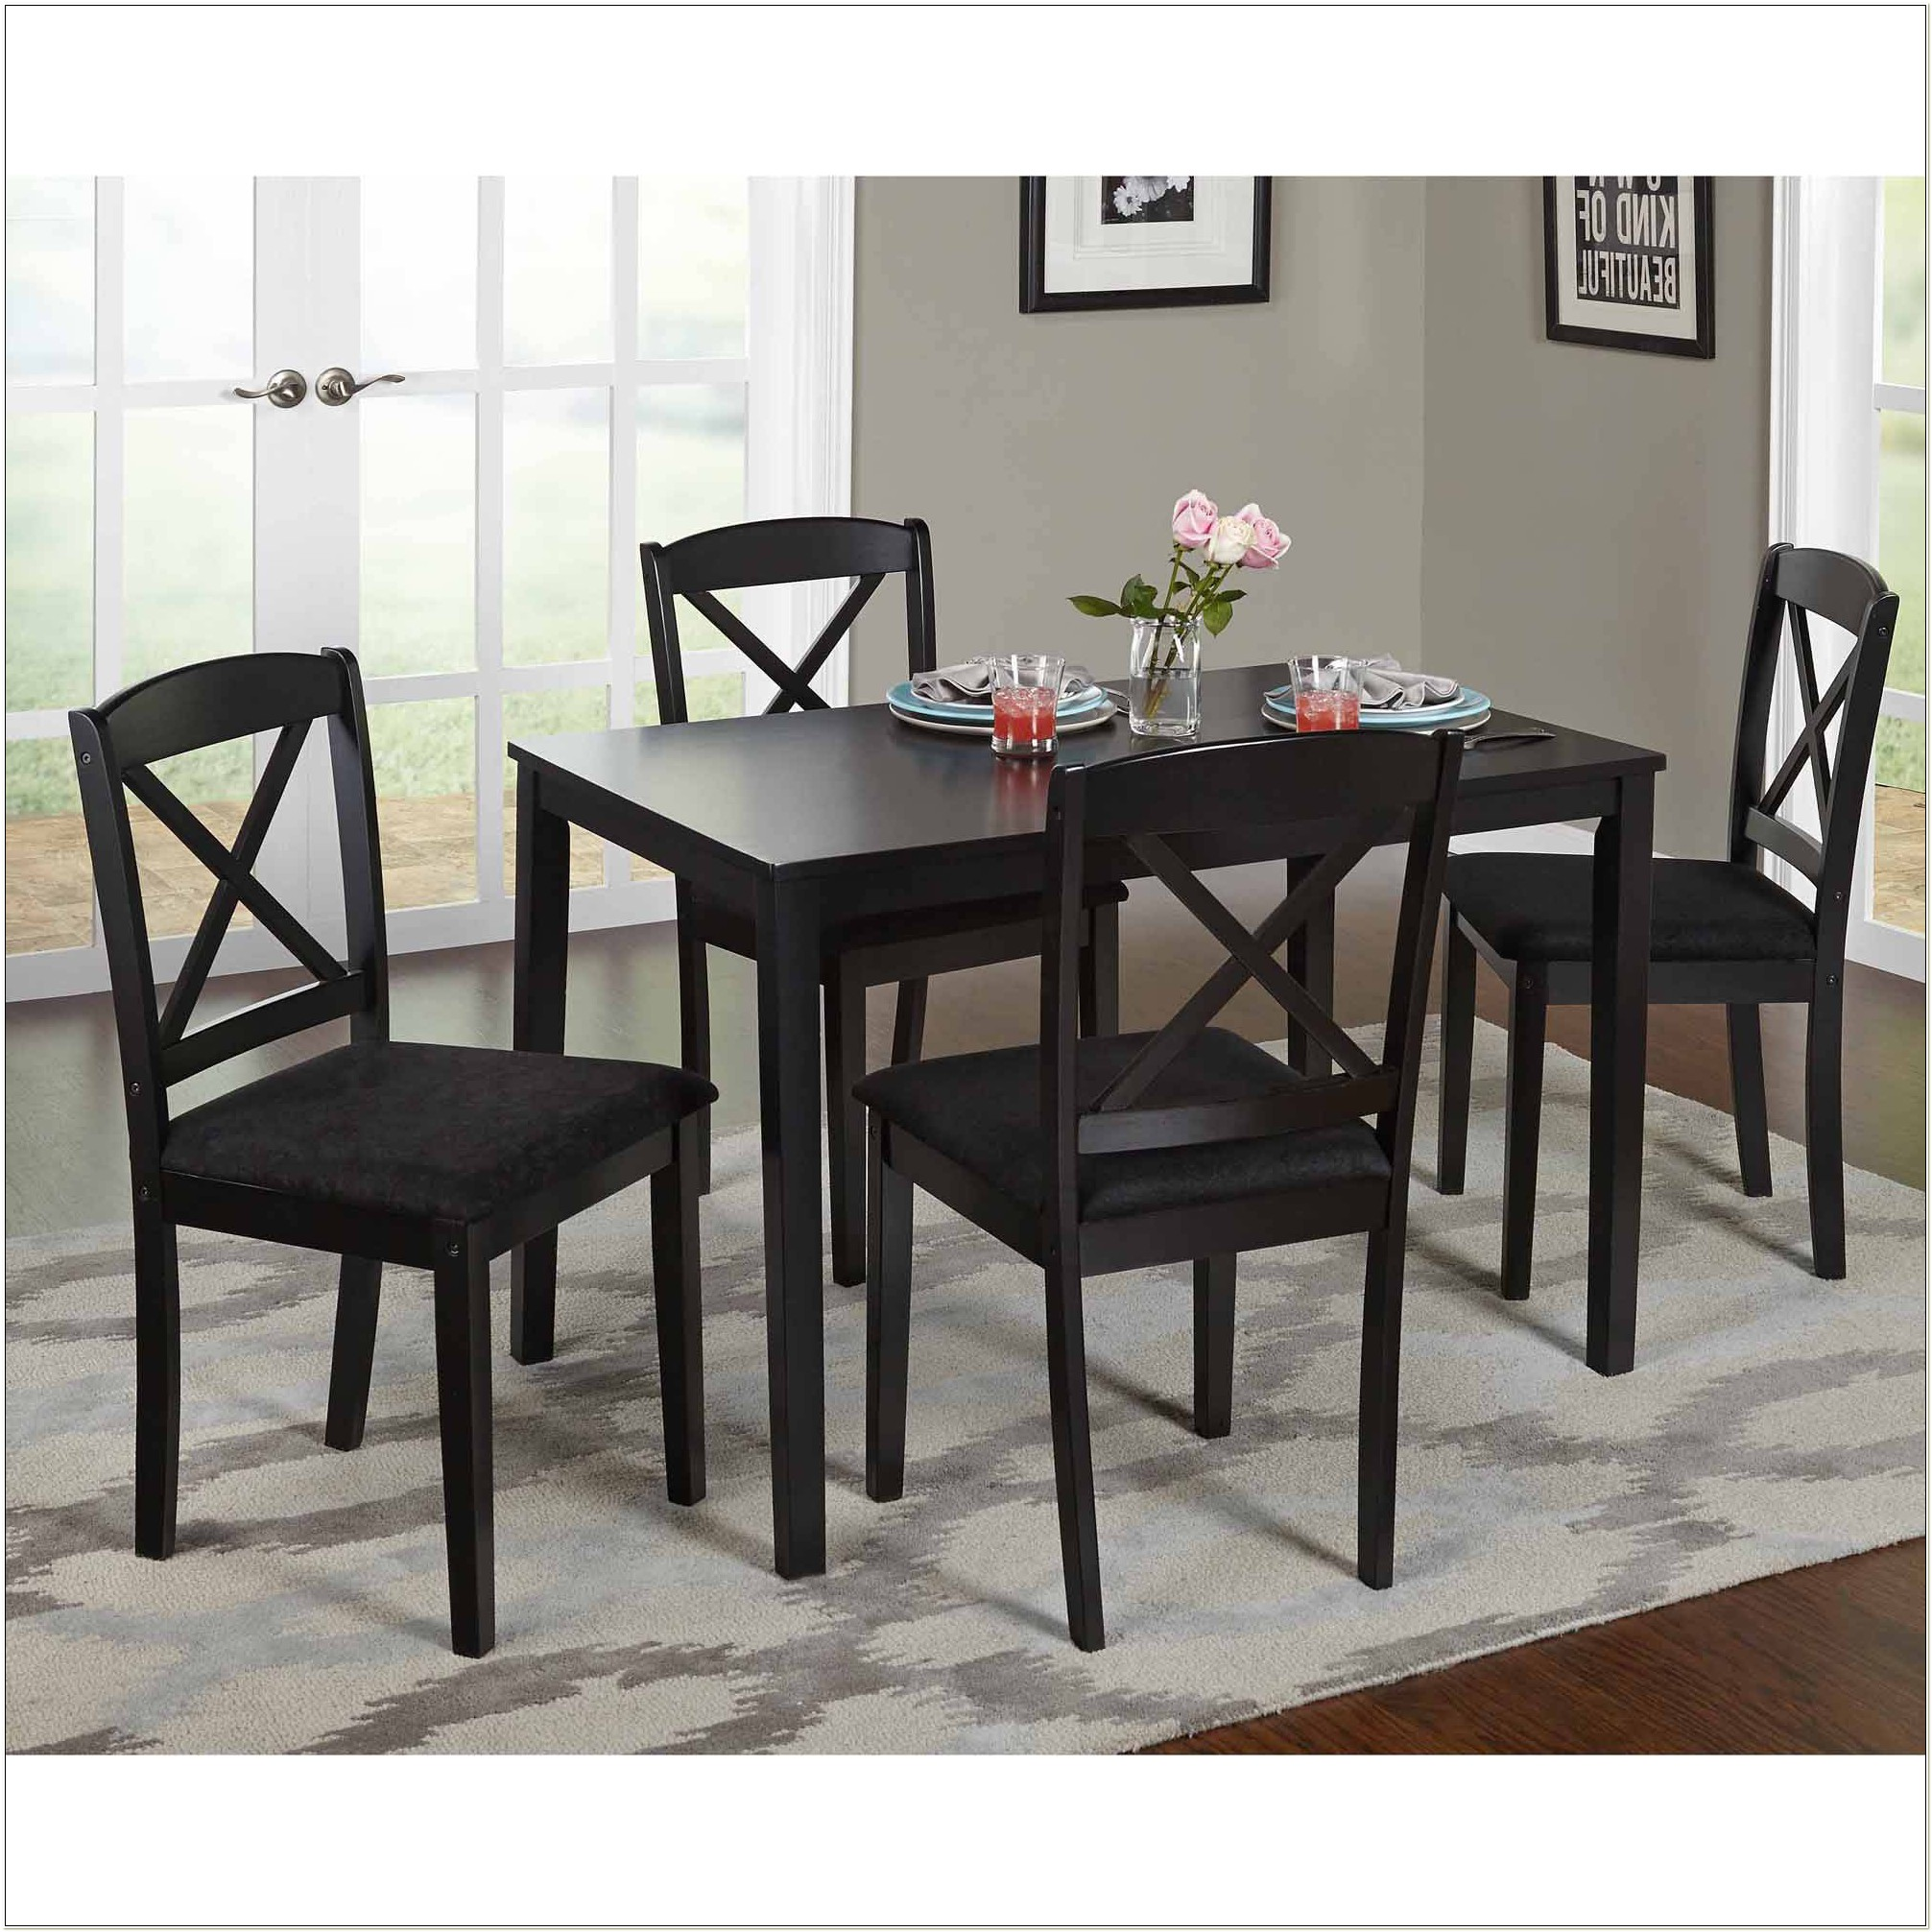 Dining Table Set Walmart Canada